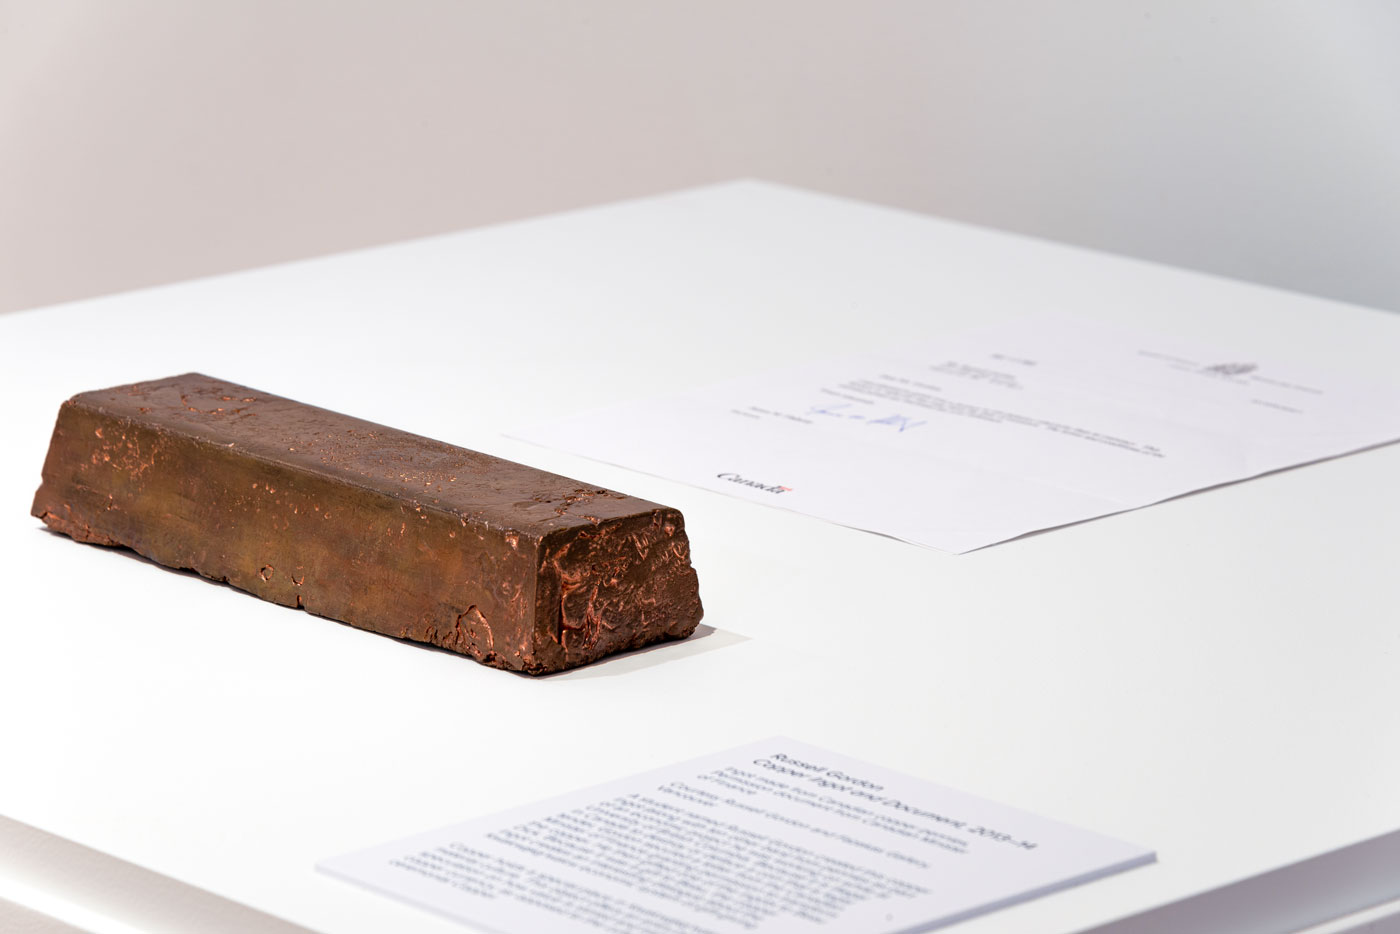 Copper Ingot and Document at Remai Modern, Saskatoon, Saskatchewan